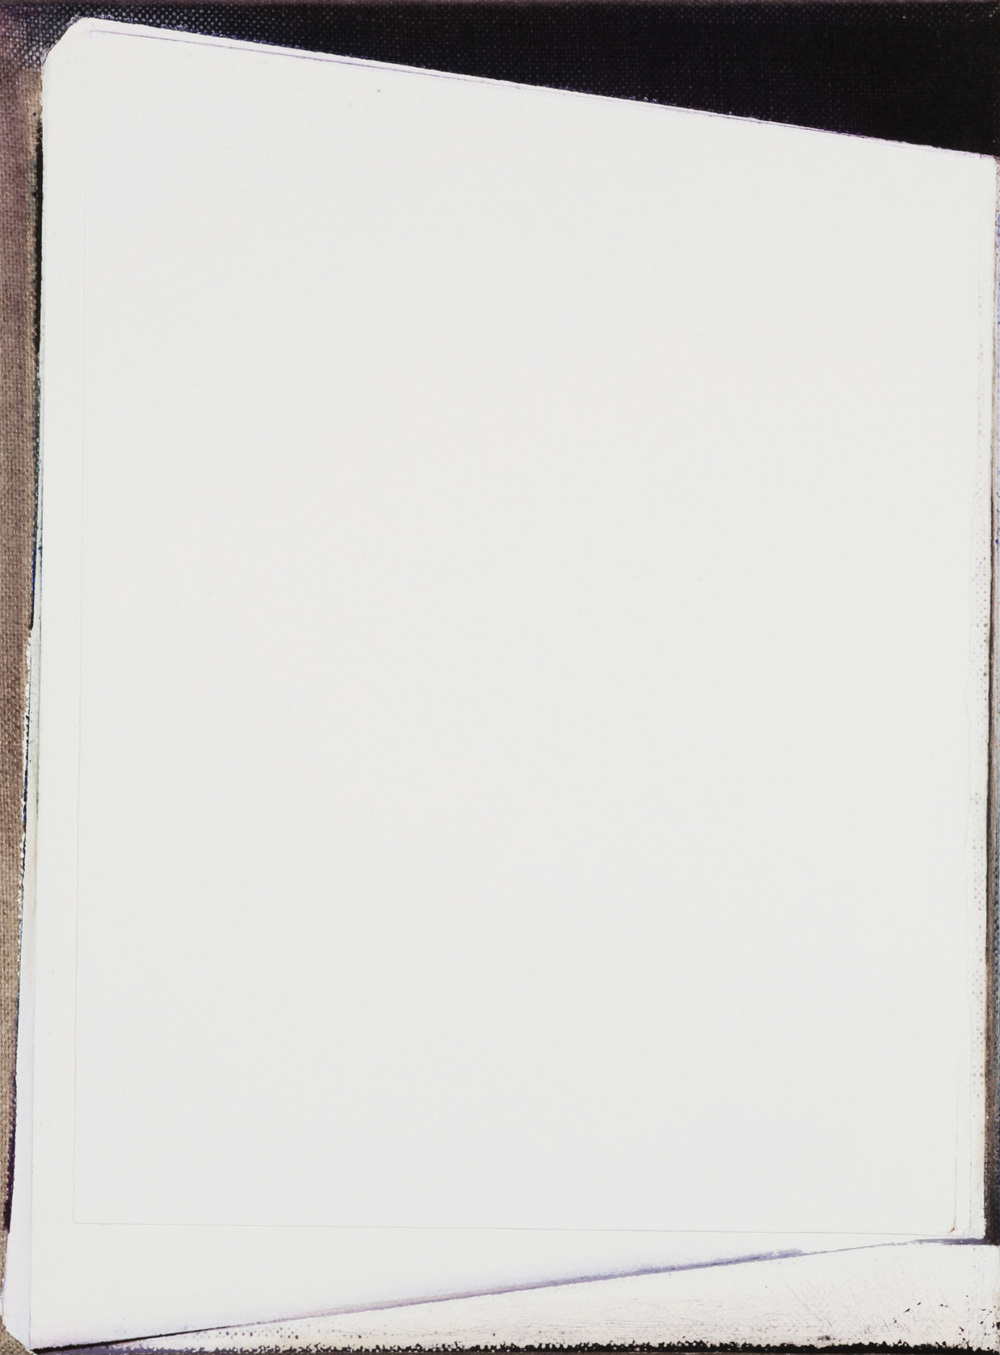 Untitled, 2012, oil on canvas, 28 x 21 cm